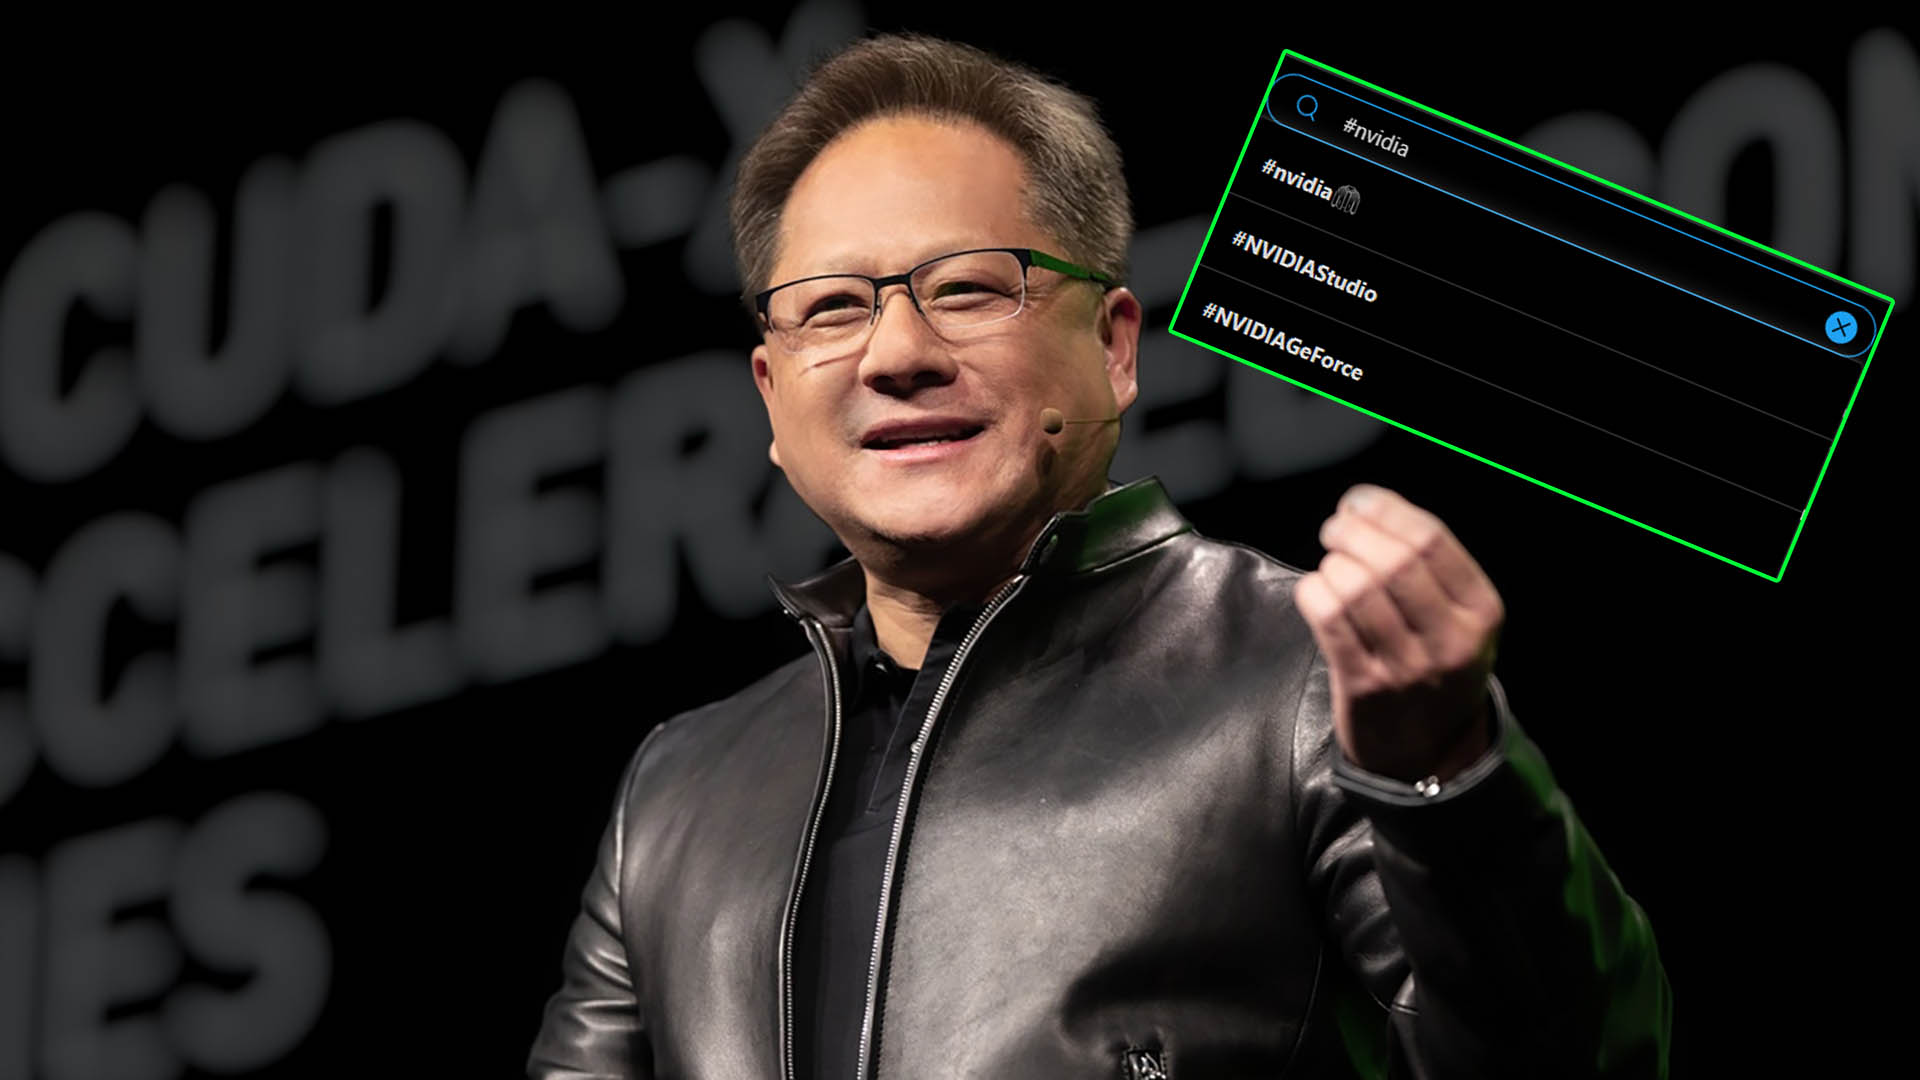 Nvidia pays good money for a hashtag emoji simply to poke fun at its CEO